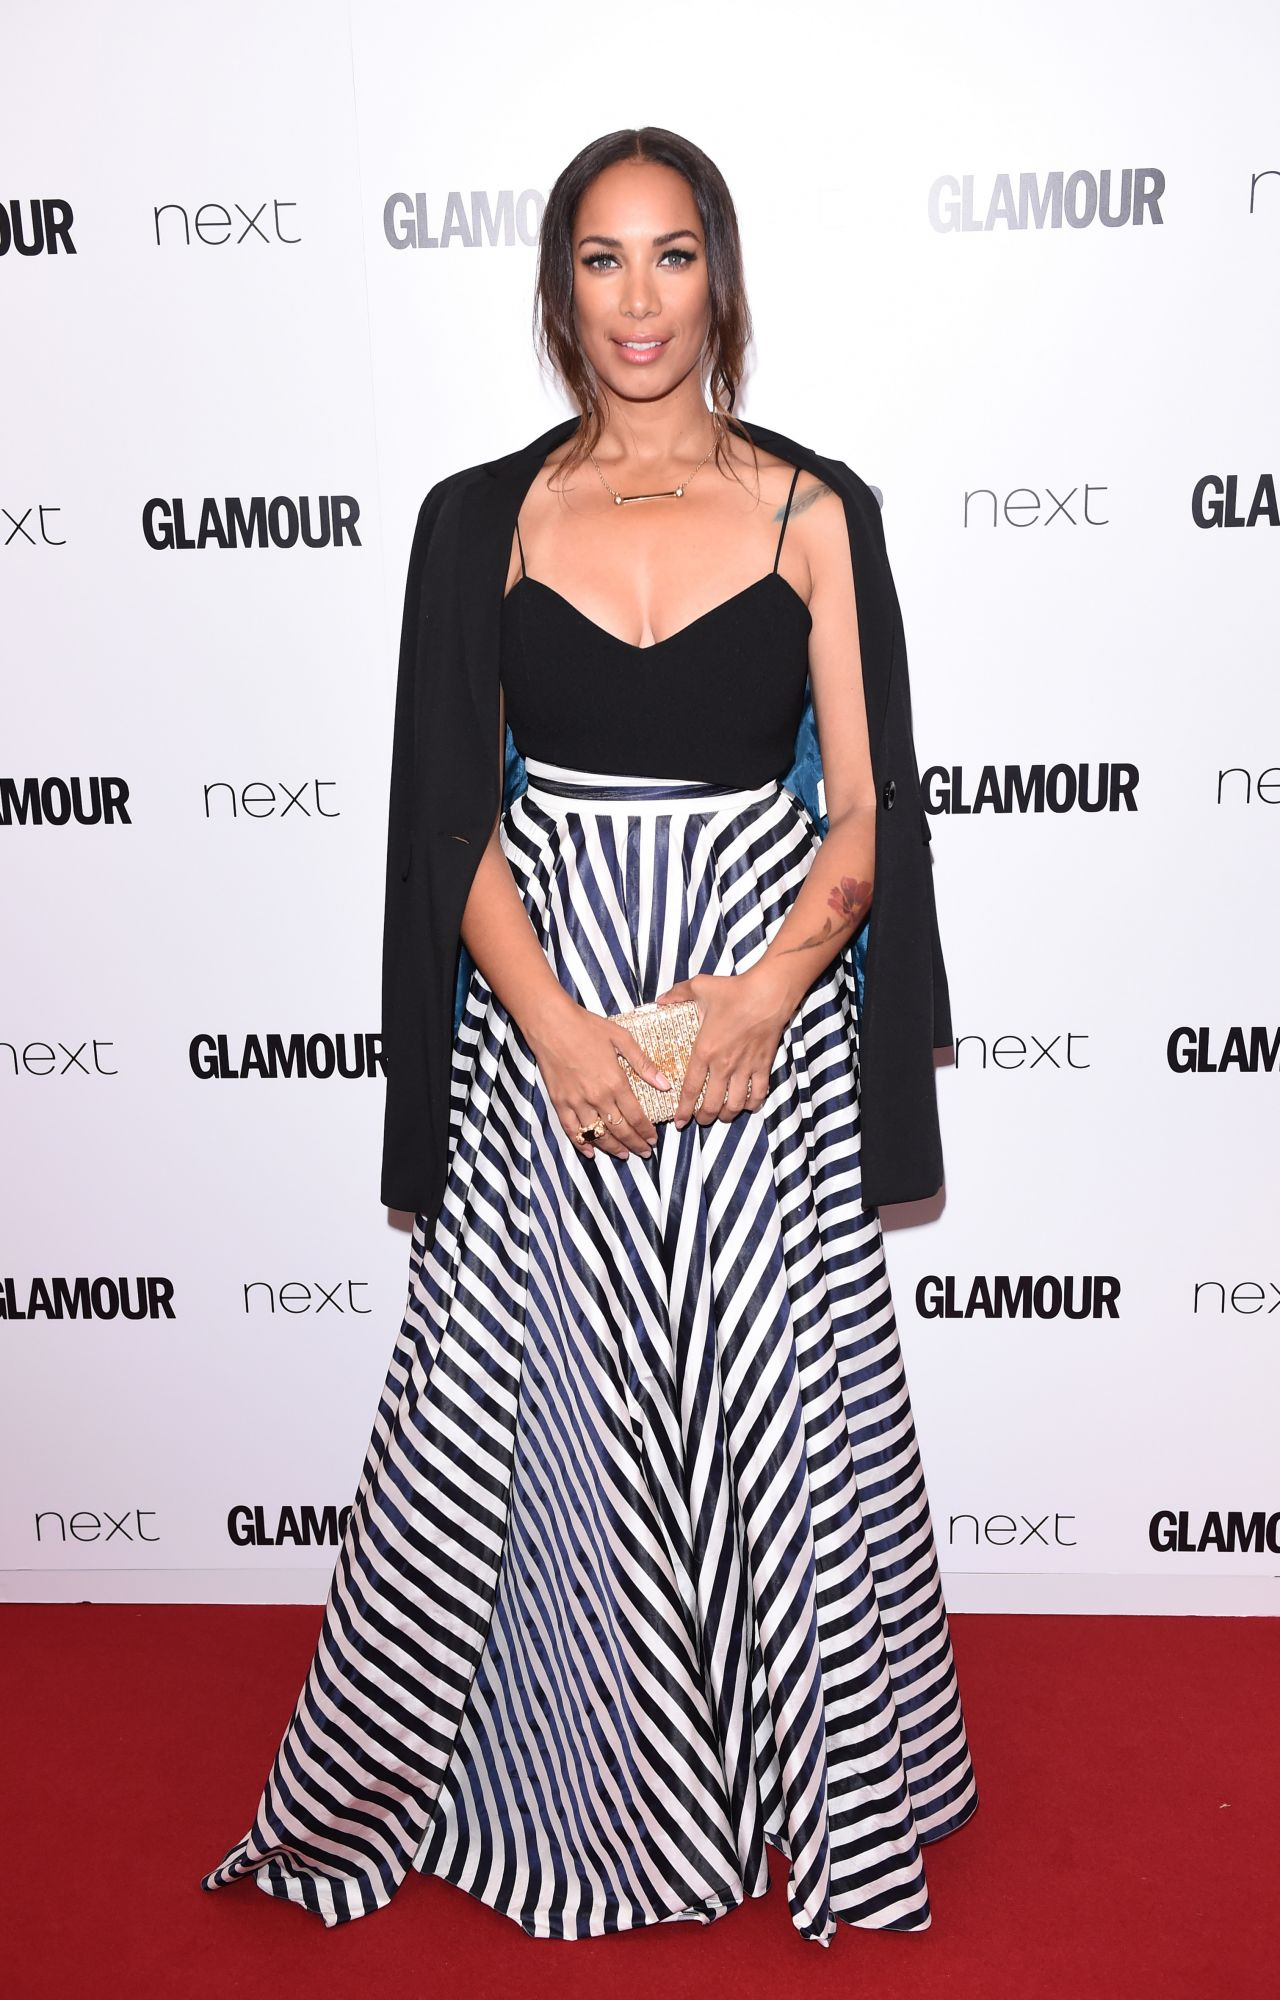 leona-lewis-2015-glamour-women-of-the-year-awards-in-london_1